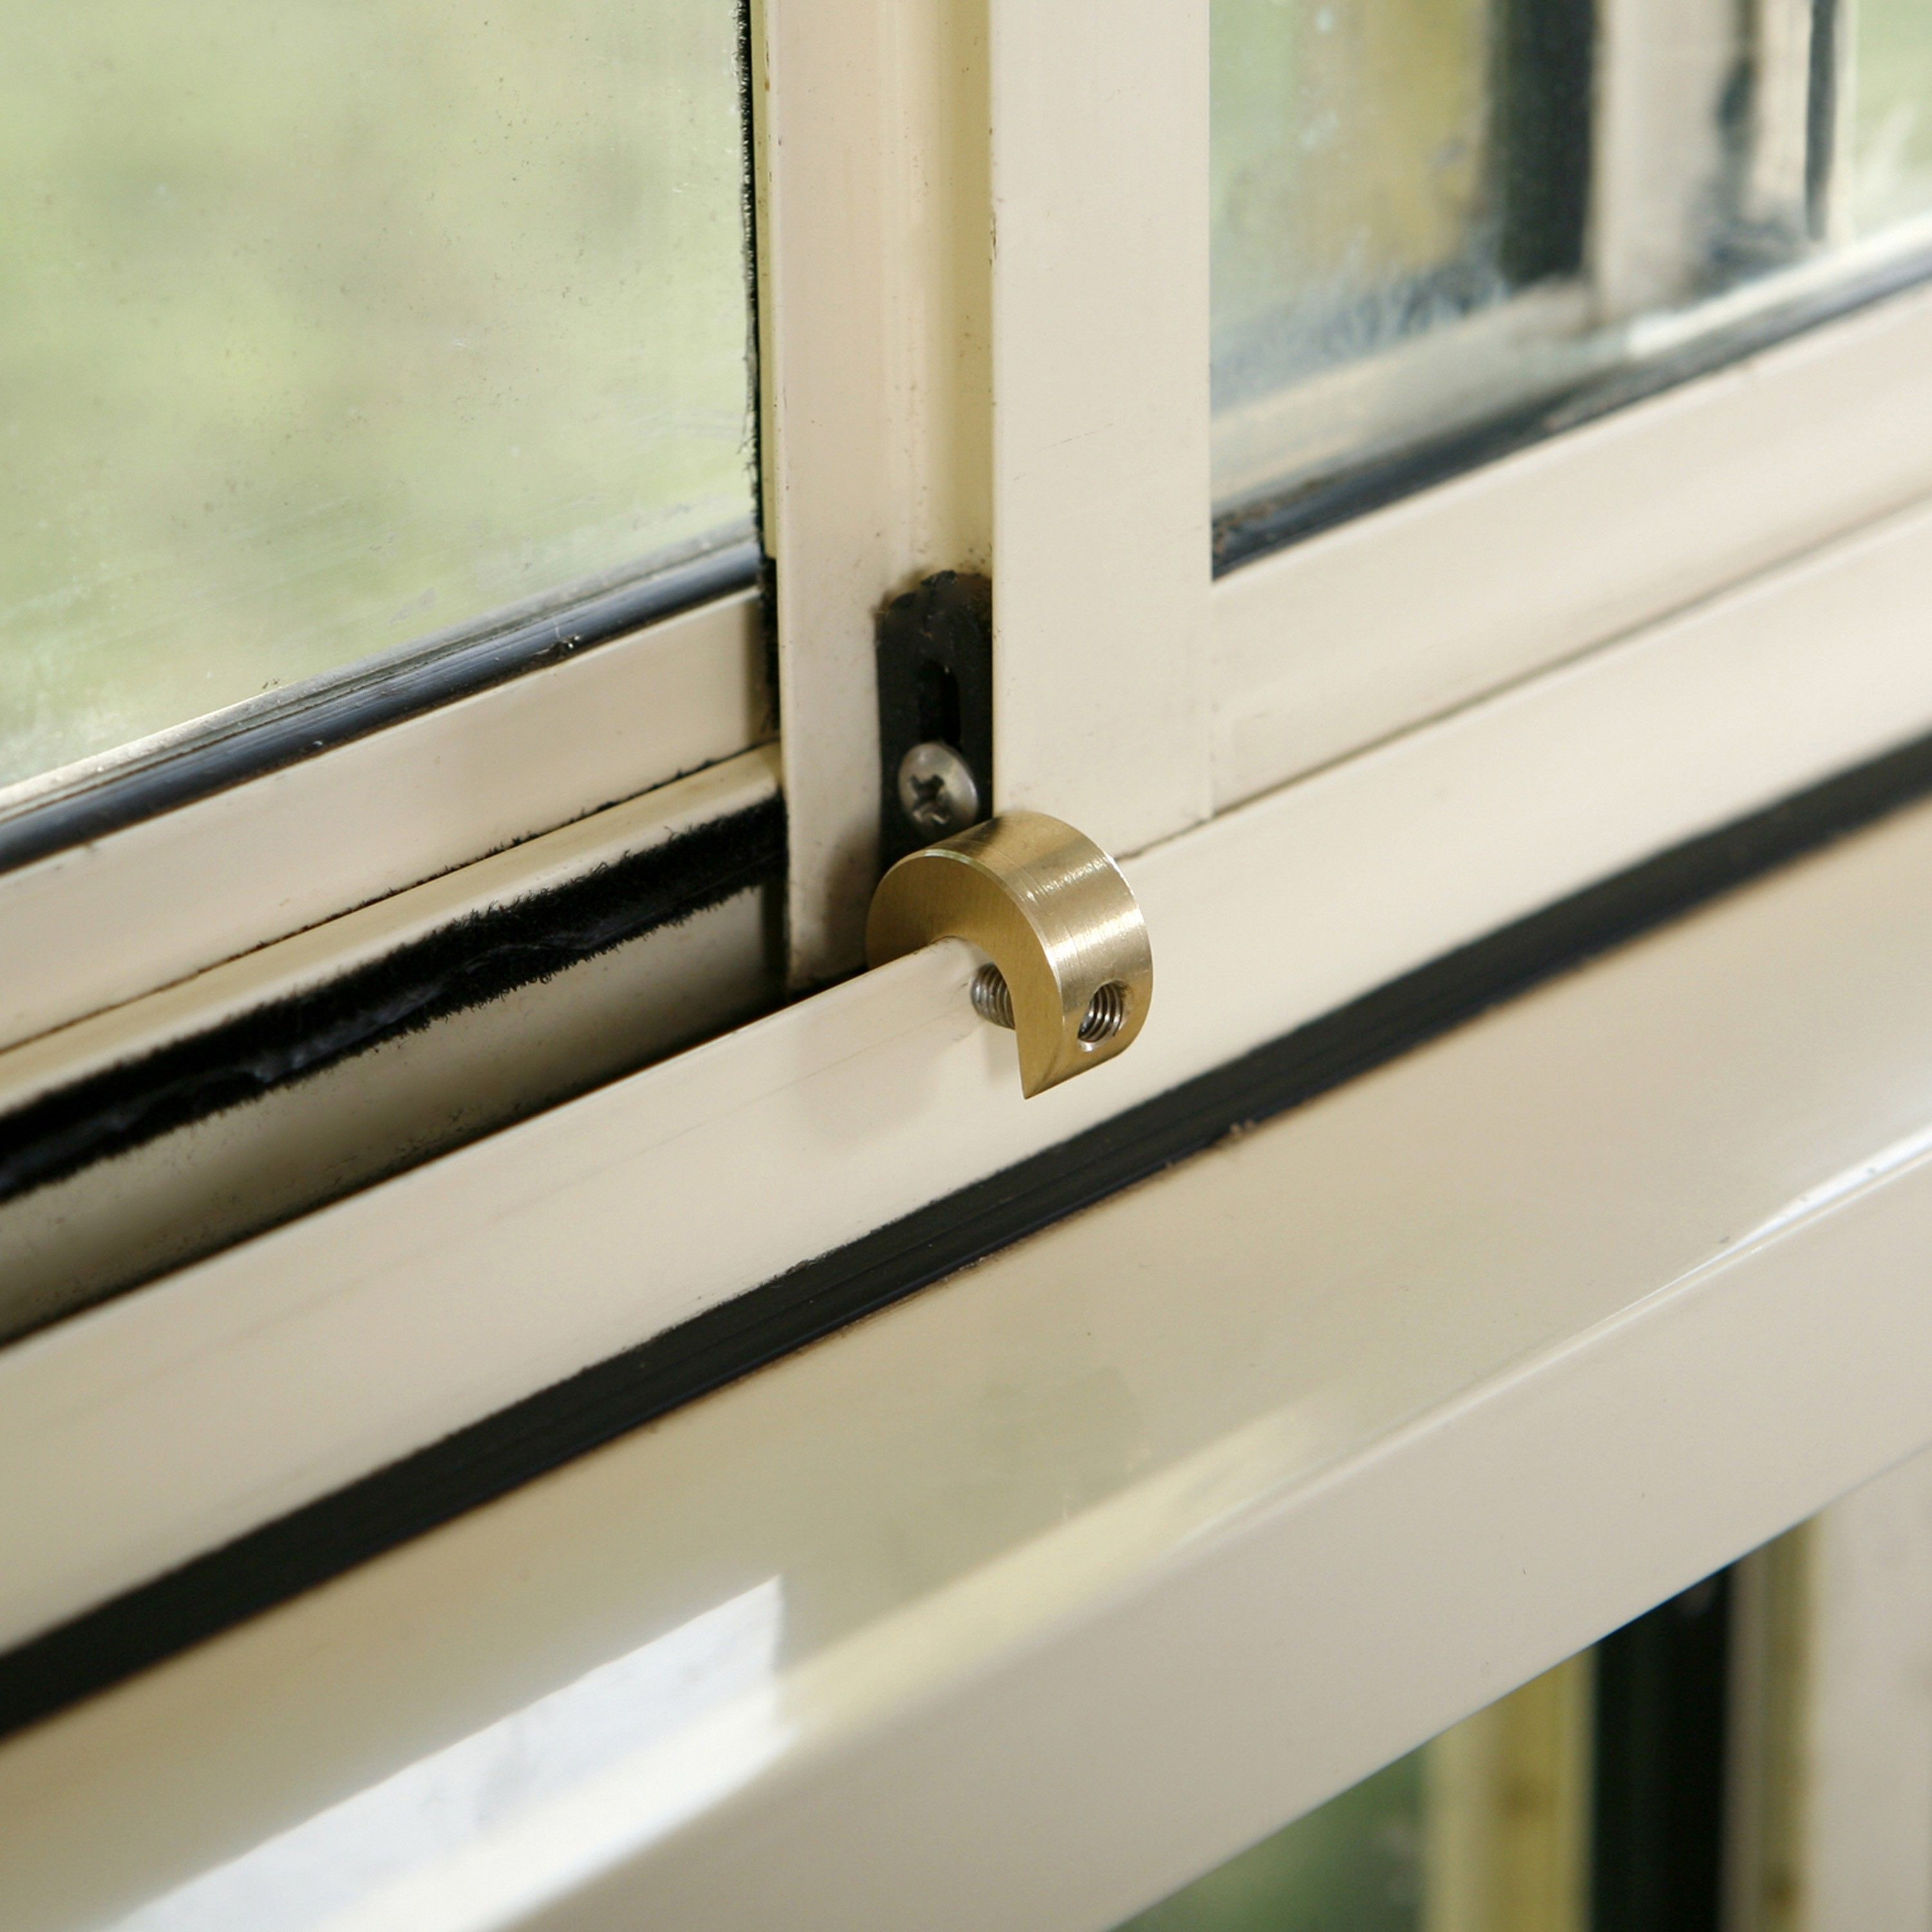 windowlocks for slide type of windows. Use this lock to